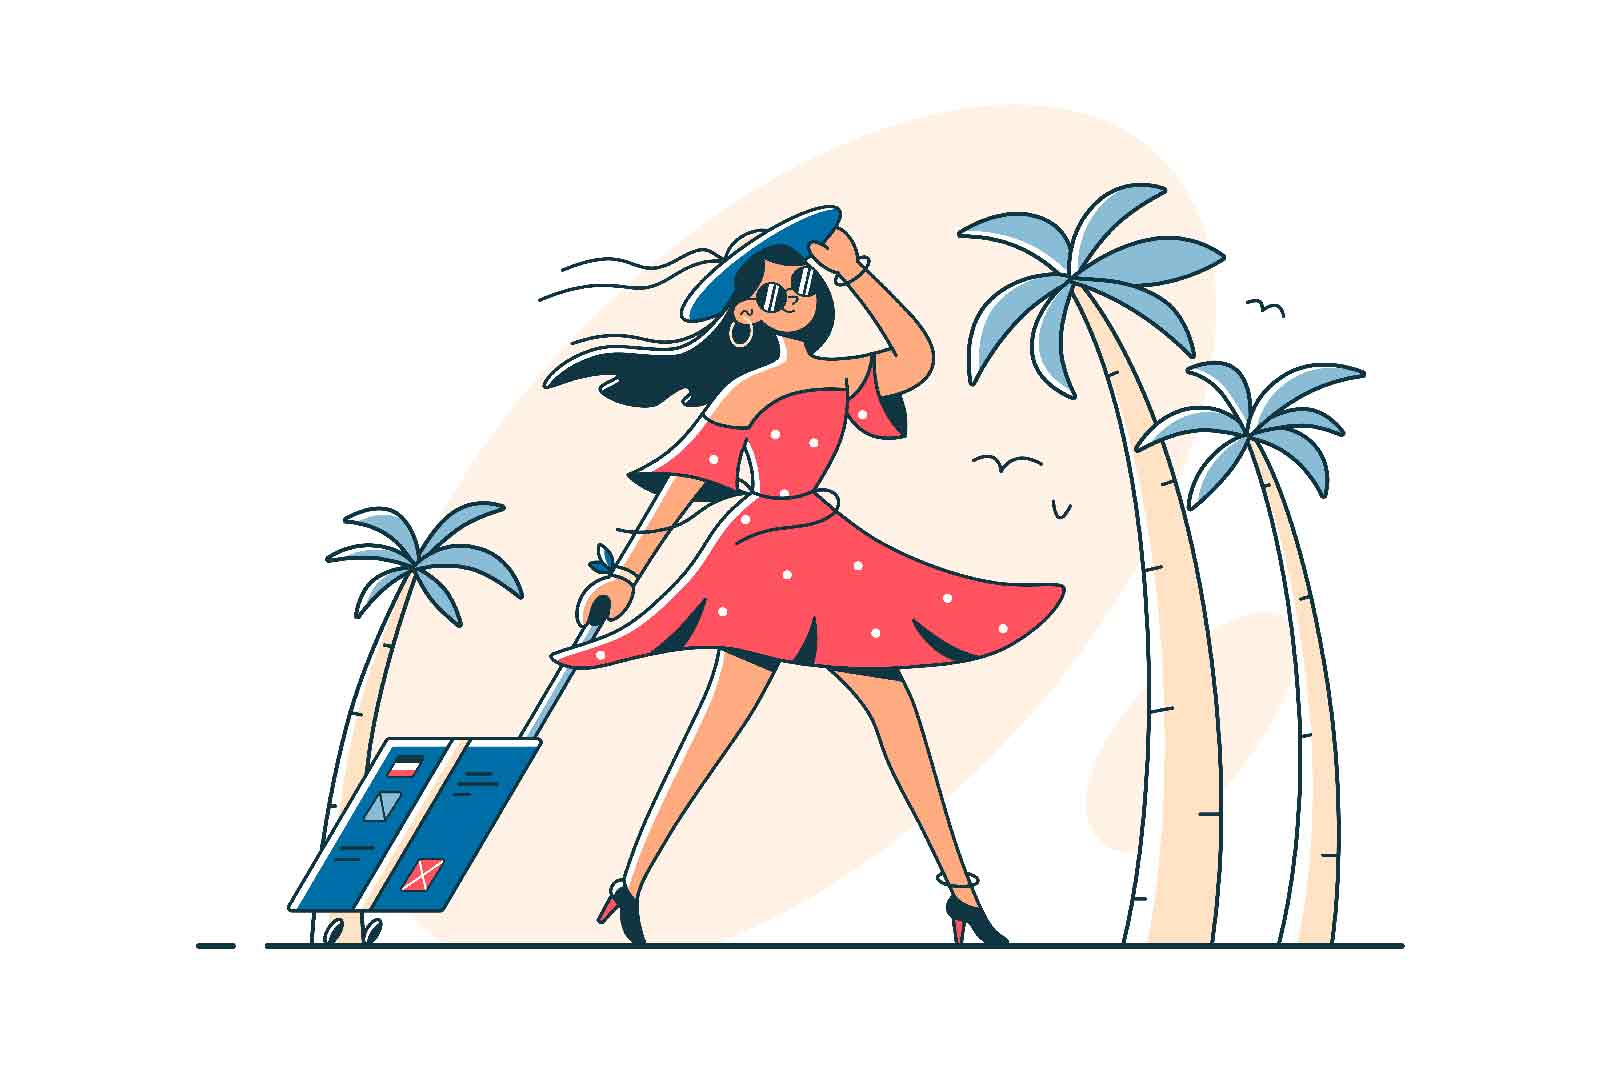 Girl on vacation with luggage vector illustration. Woman in dress, palm trees, suitcase flat style. Travel, summer holiday, tropics concept